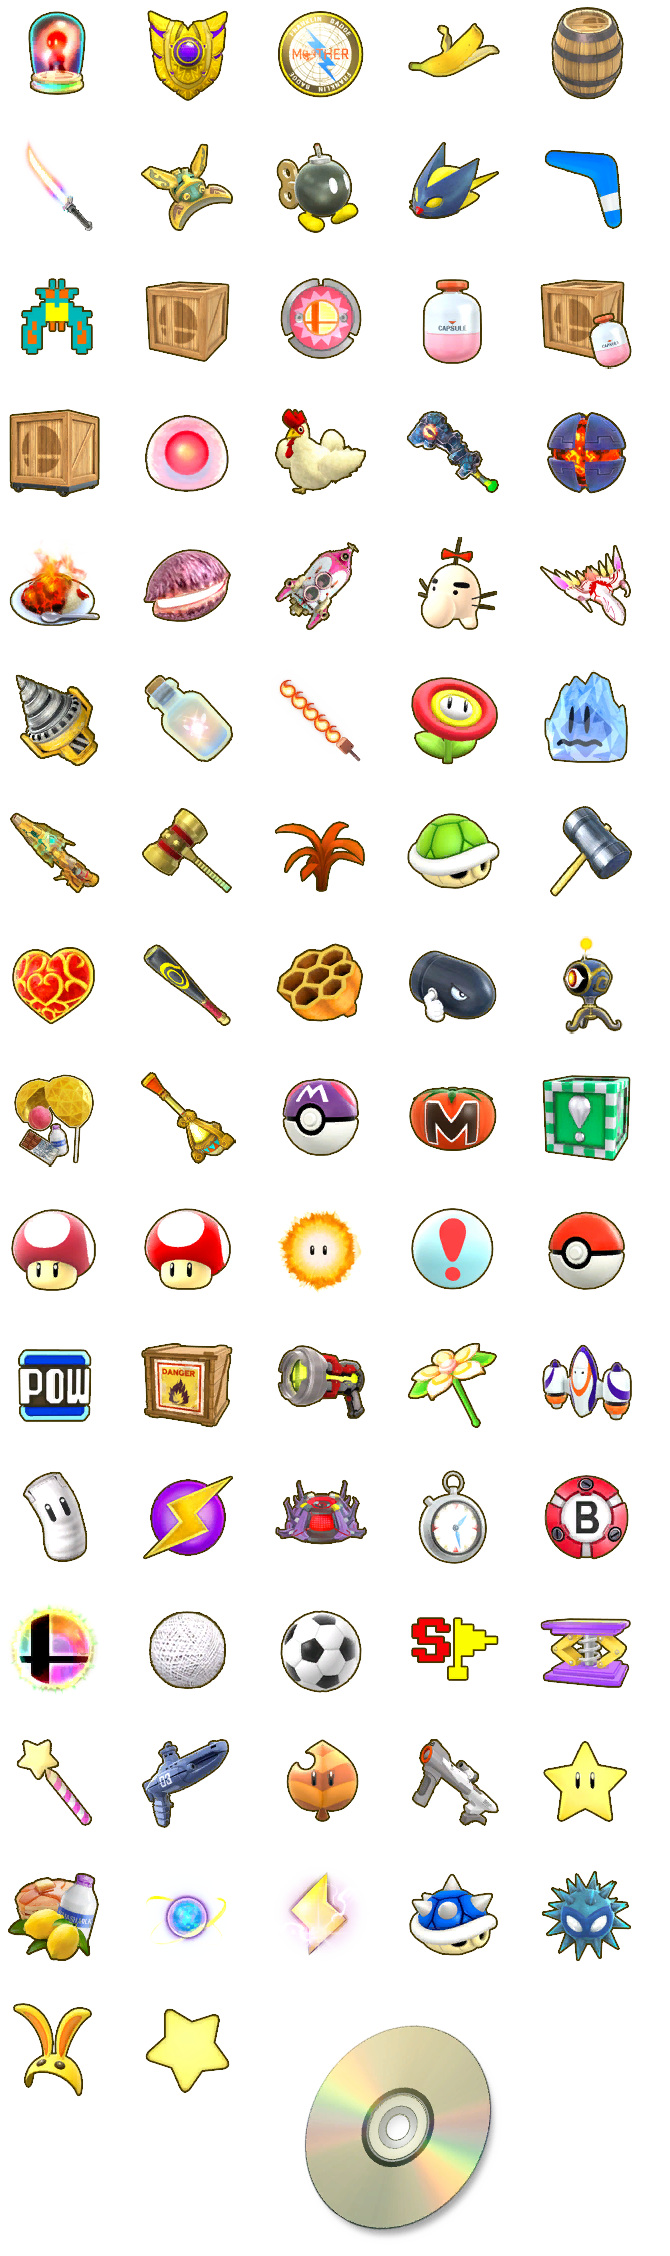 Super Smash Bros. for Wii U - Item Icons